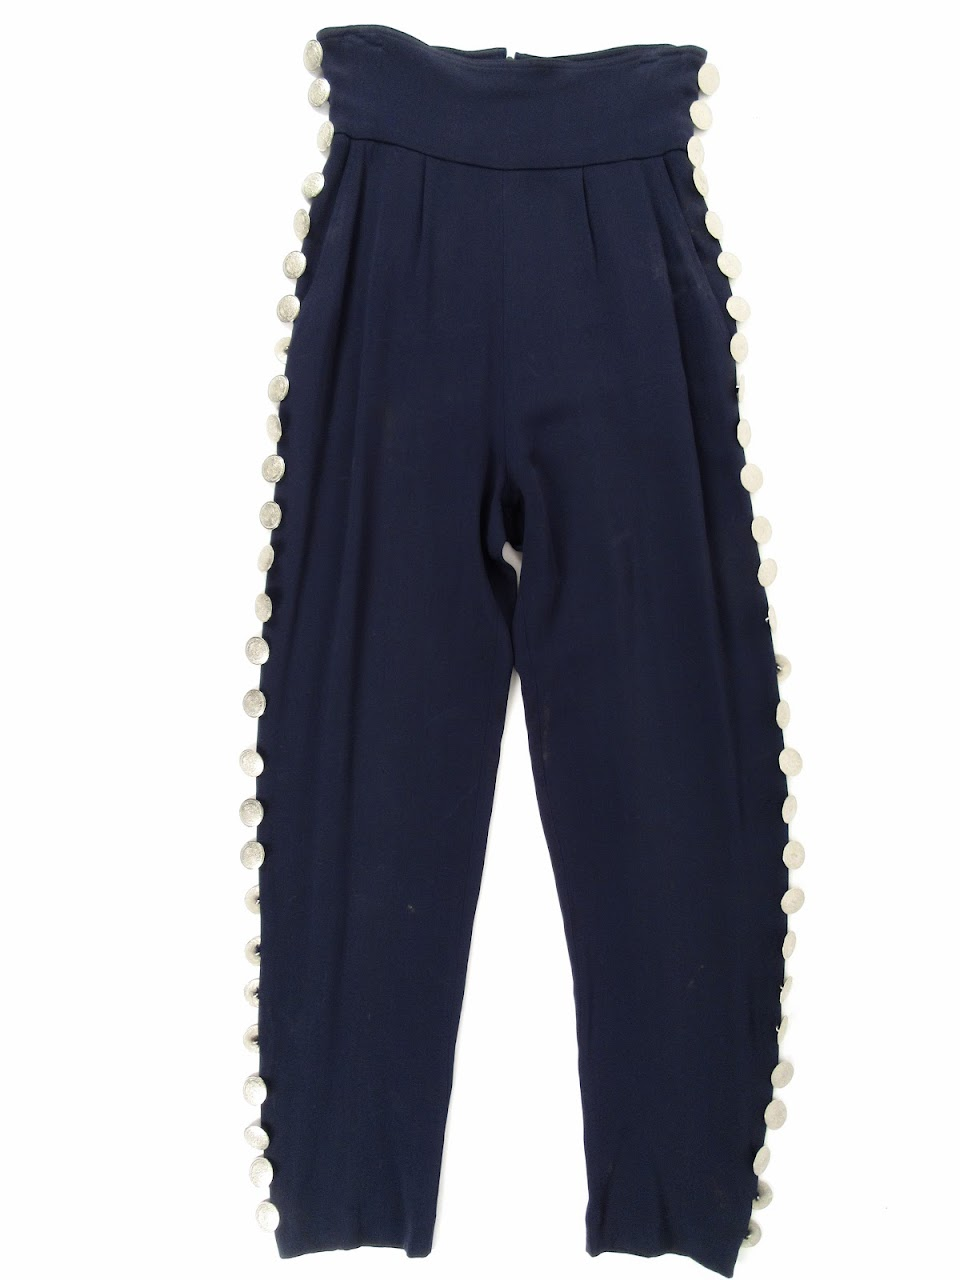 Rifat Ozbek High Waisted Pant